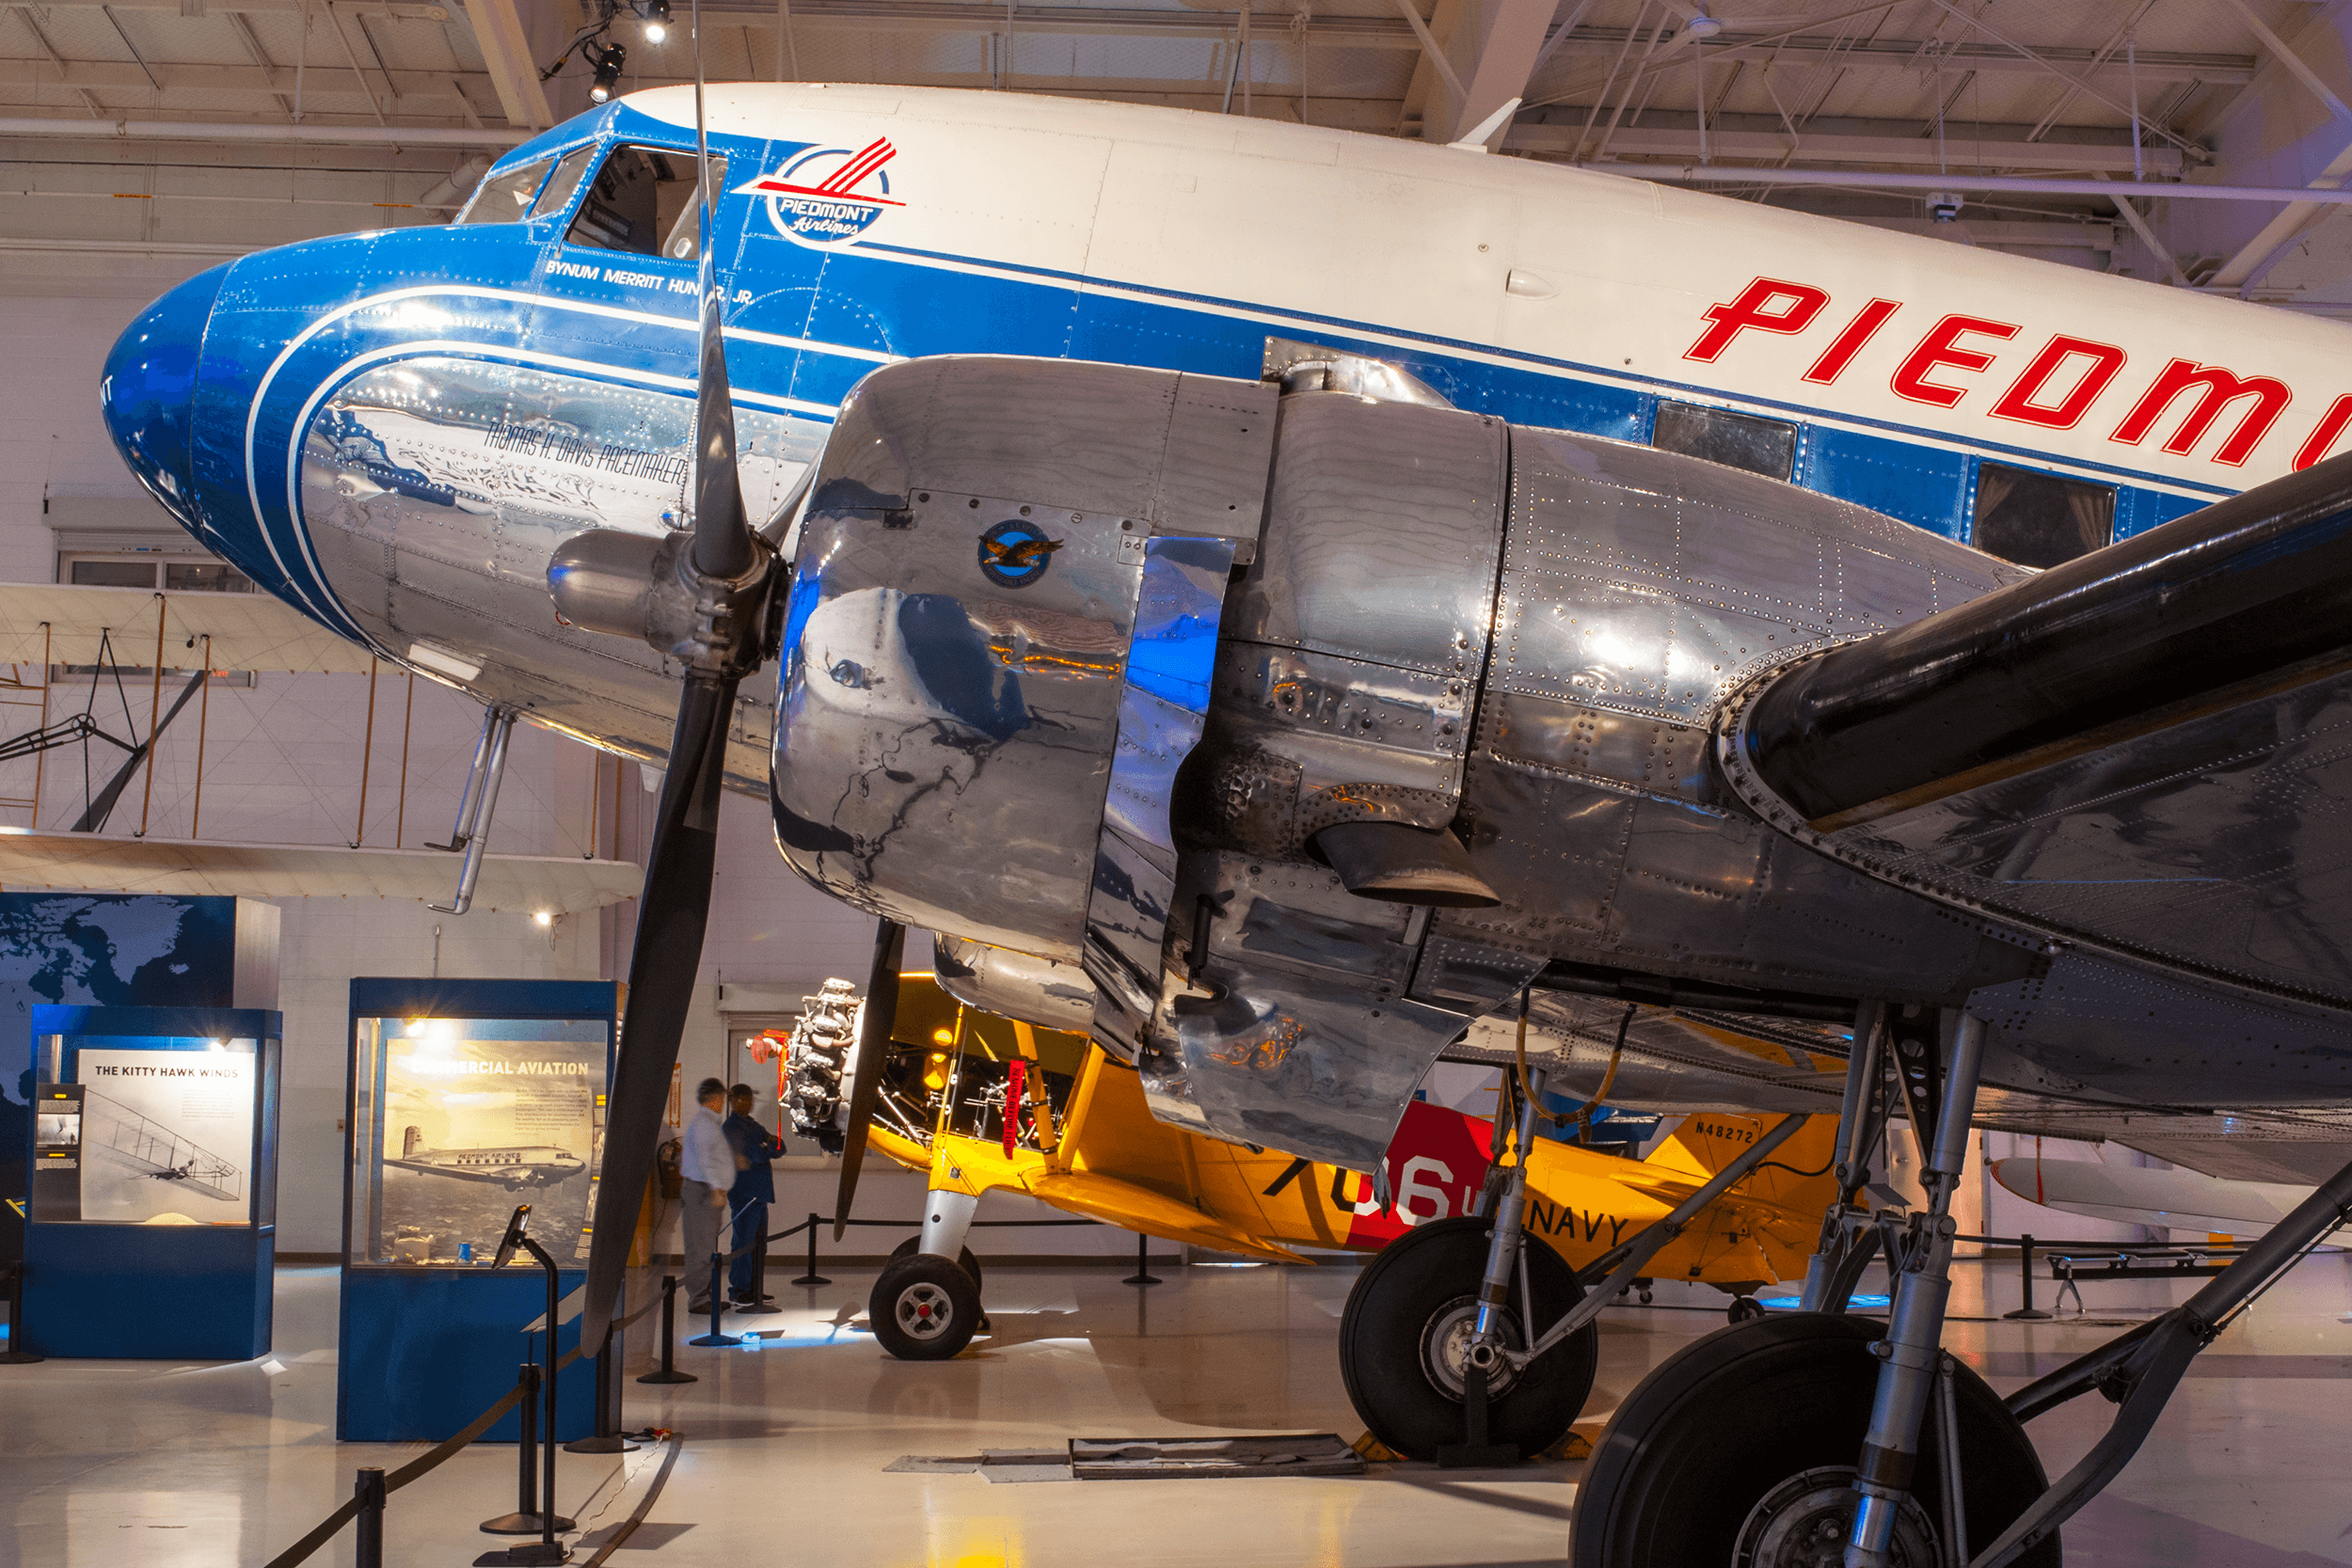 After WWII, many DC-3 were available at little cost. Also, many pilots, who during WWII flew the C-47, the military version of the DC-3, were looking for jobs. Therefore, in the late 1940s and early 1950s, many new airlines were formed using the DC-3 as their primary aircraft. The DC-3 on display was initially built as a C-47 cargo plane in 1942. Piedmont Airlines acquired the aircraft in 1986 and restored it to an original airline configuration.